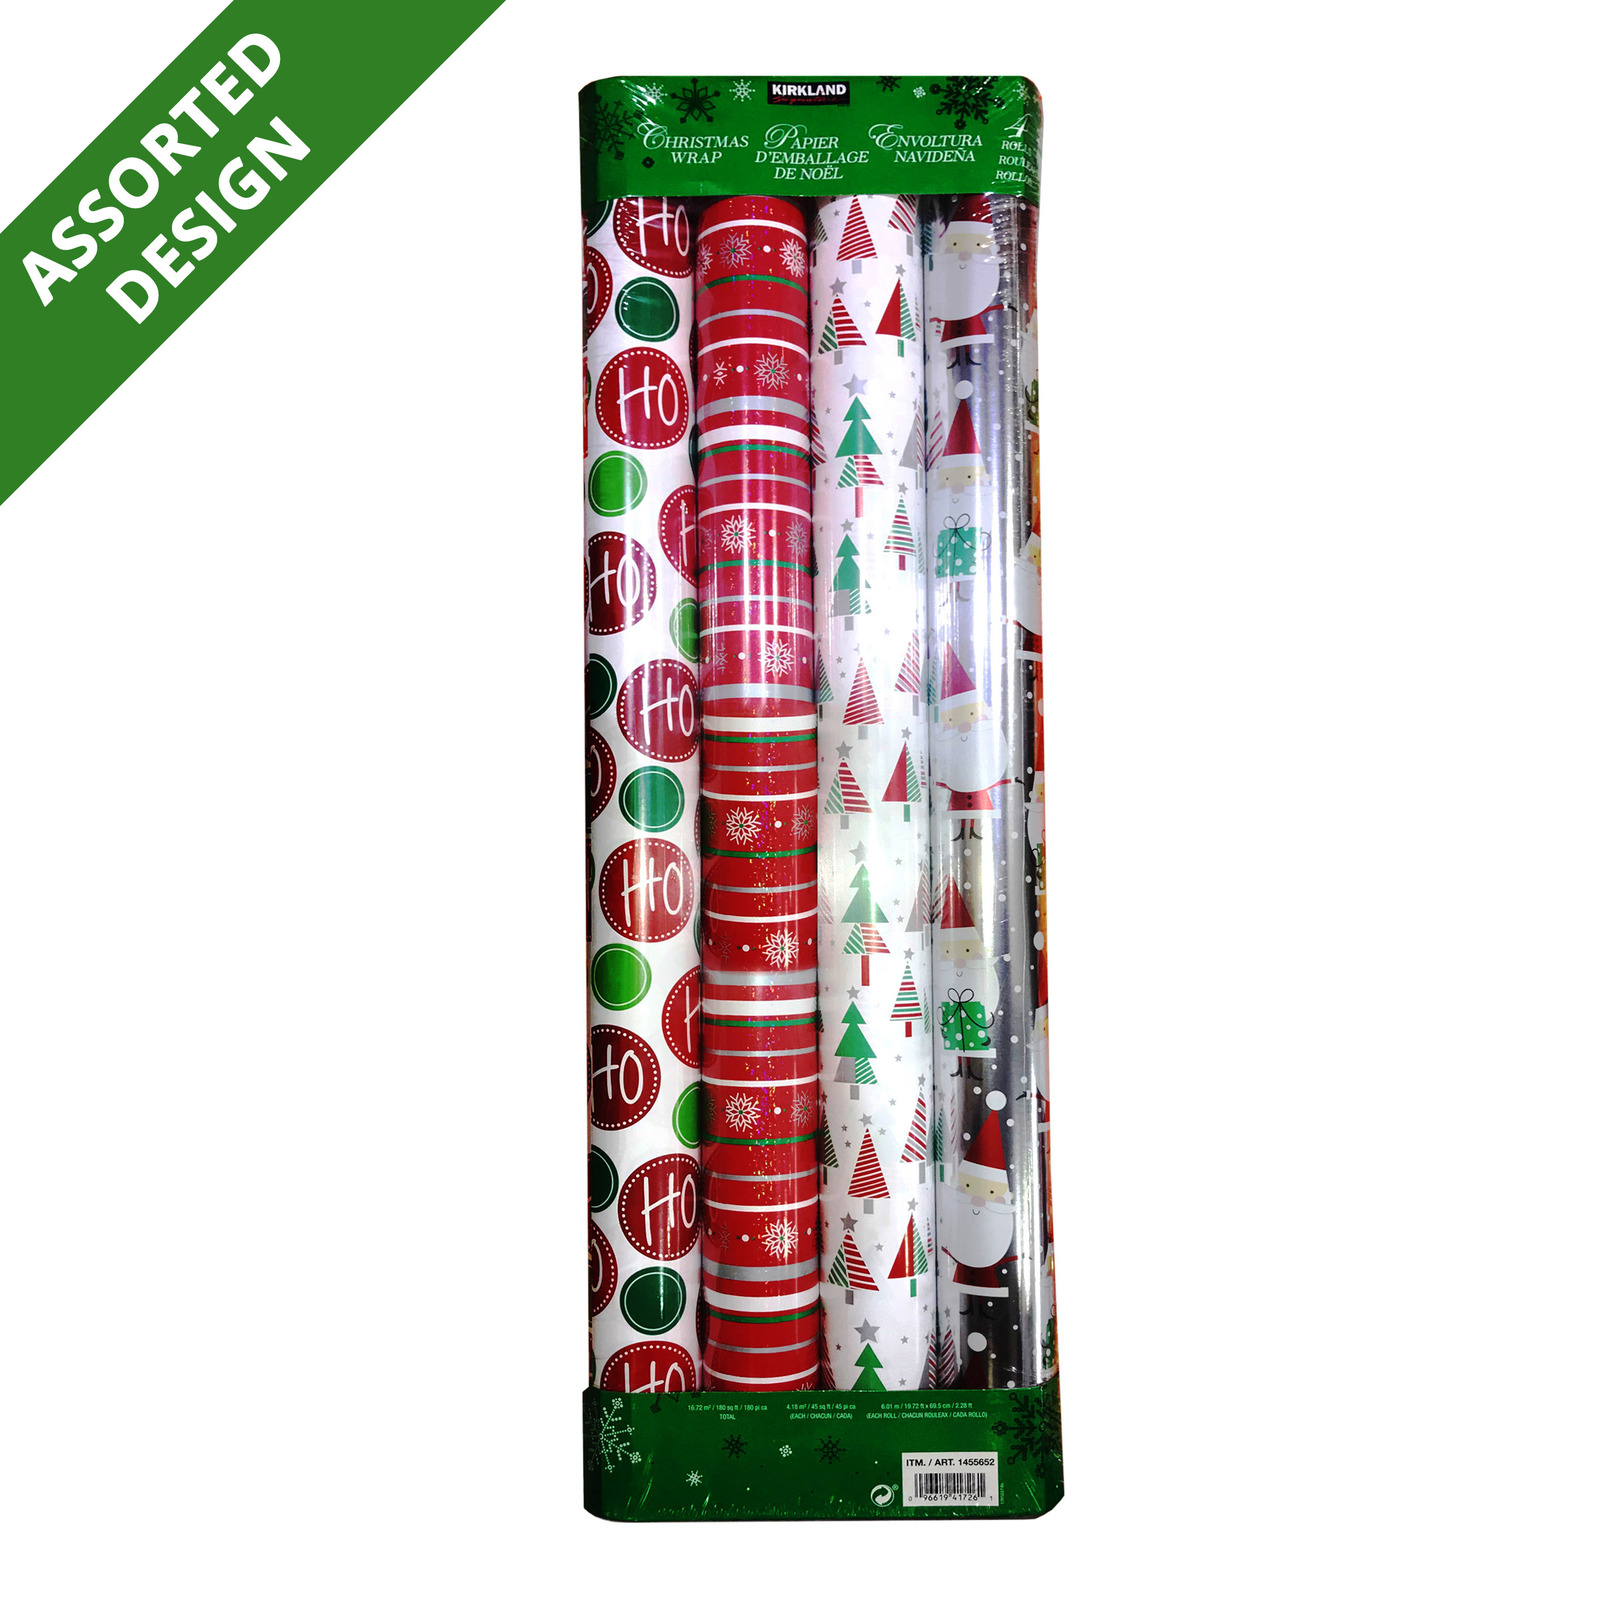 Kirkland Signature Christmas Wrapping Paper - Assorted